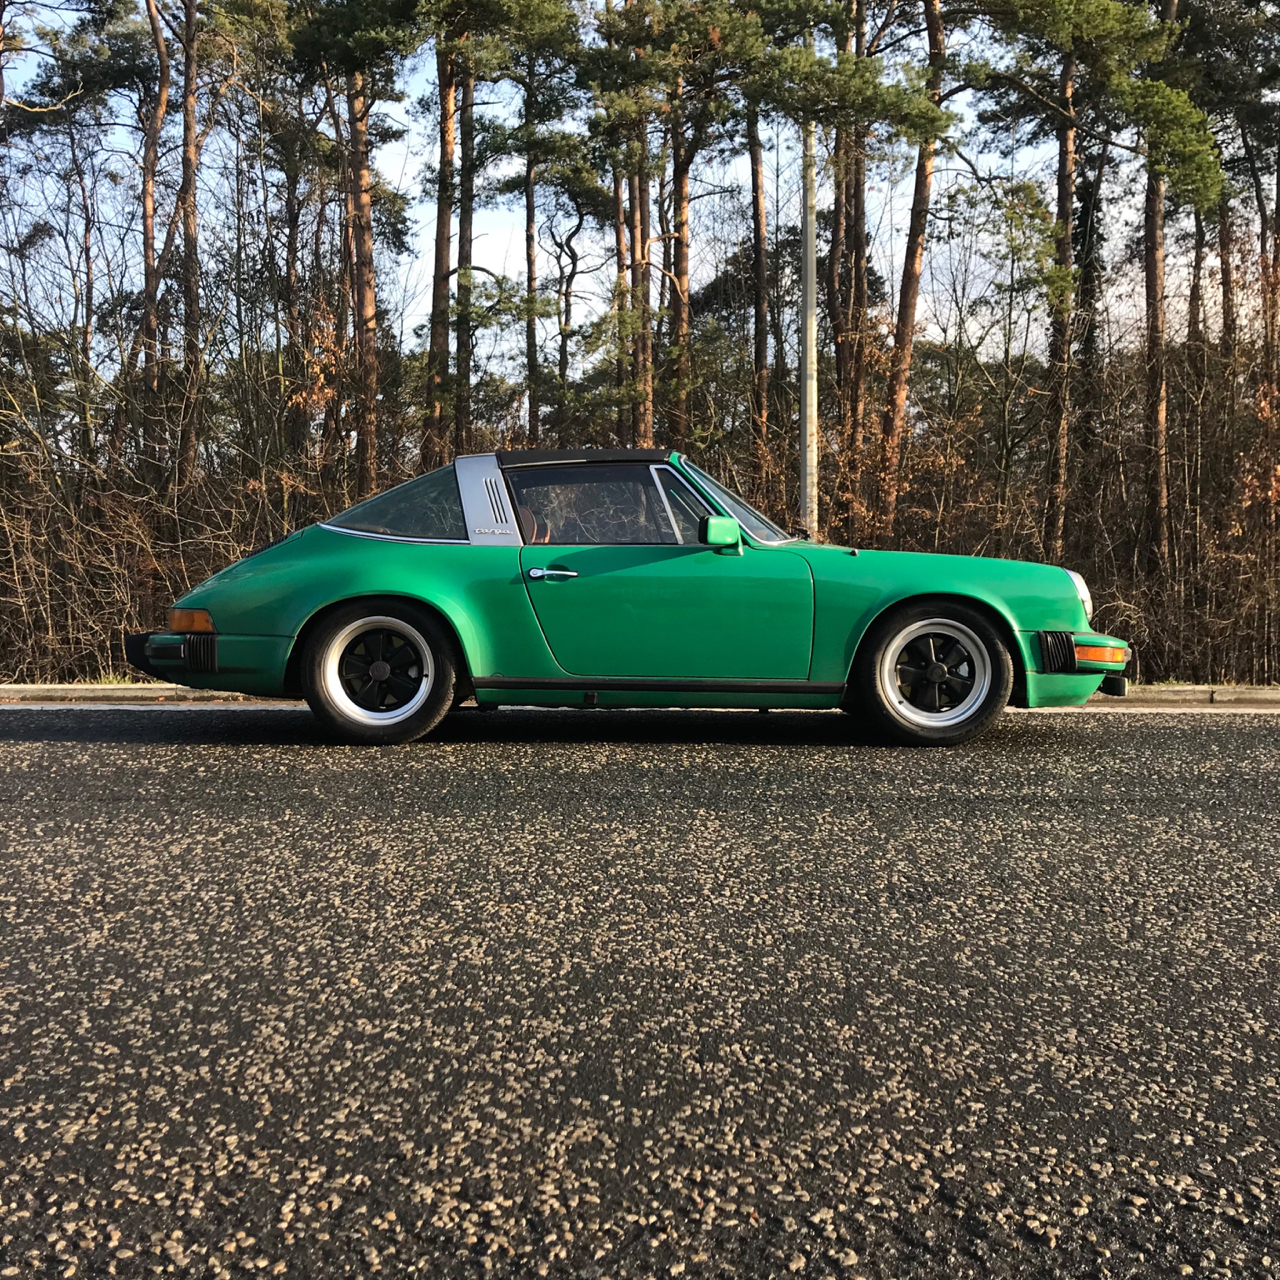 youngtimer.one - Porsche 911 SC targa - Fern Green - 1978 - 2 of 2